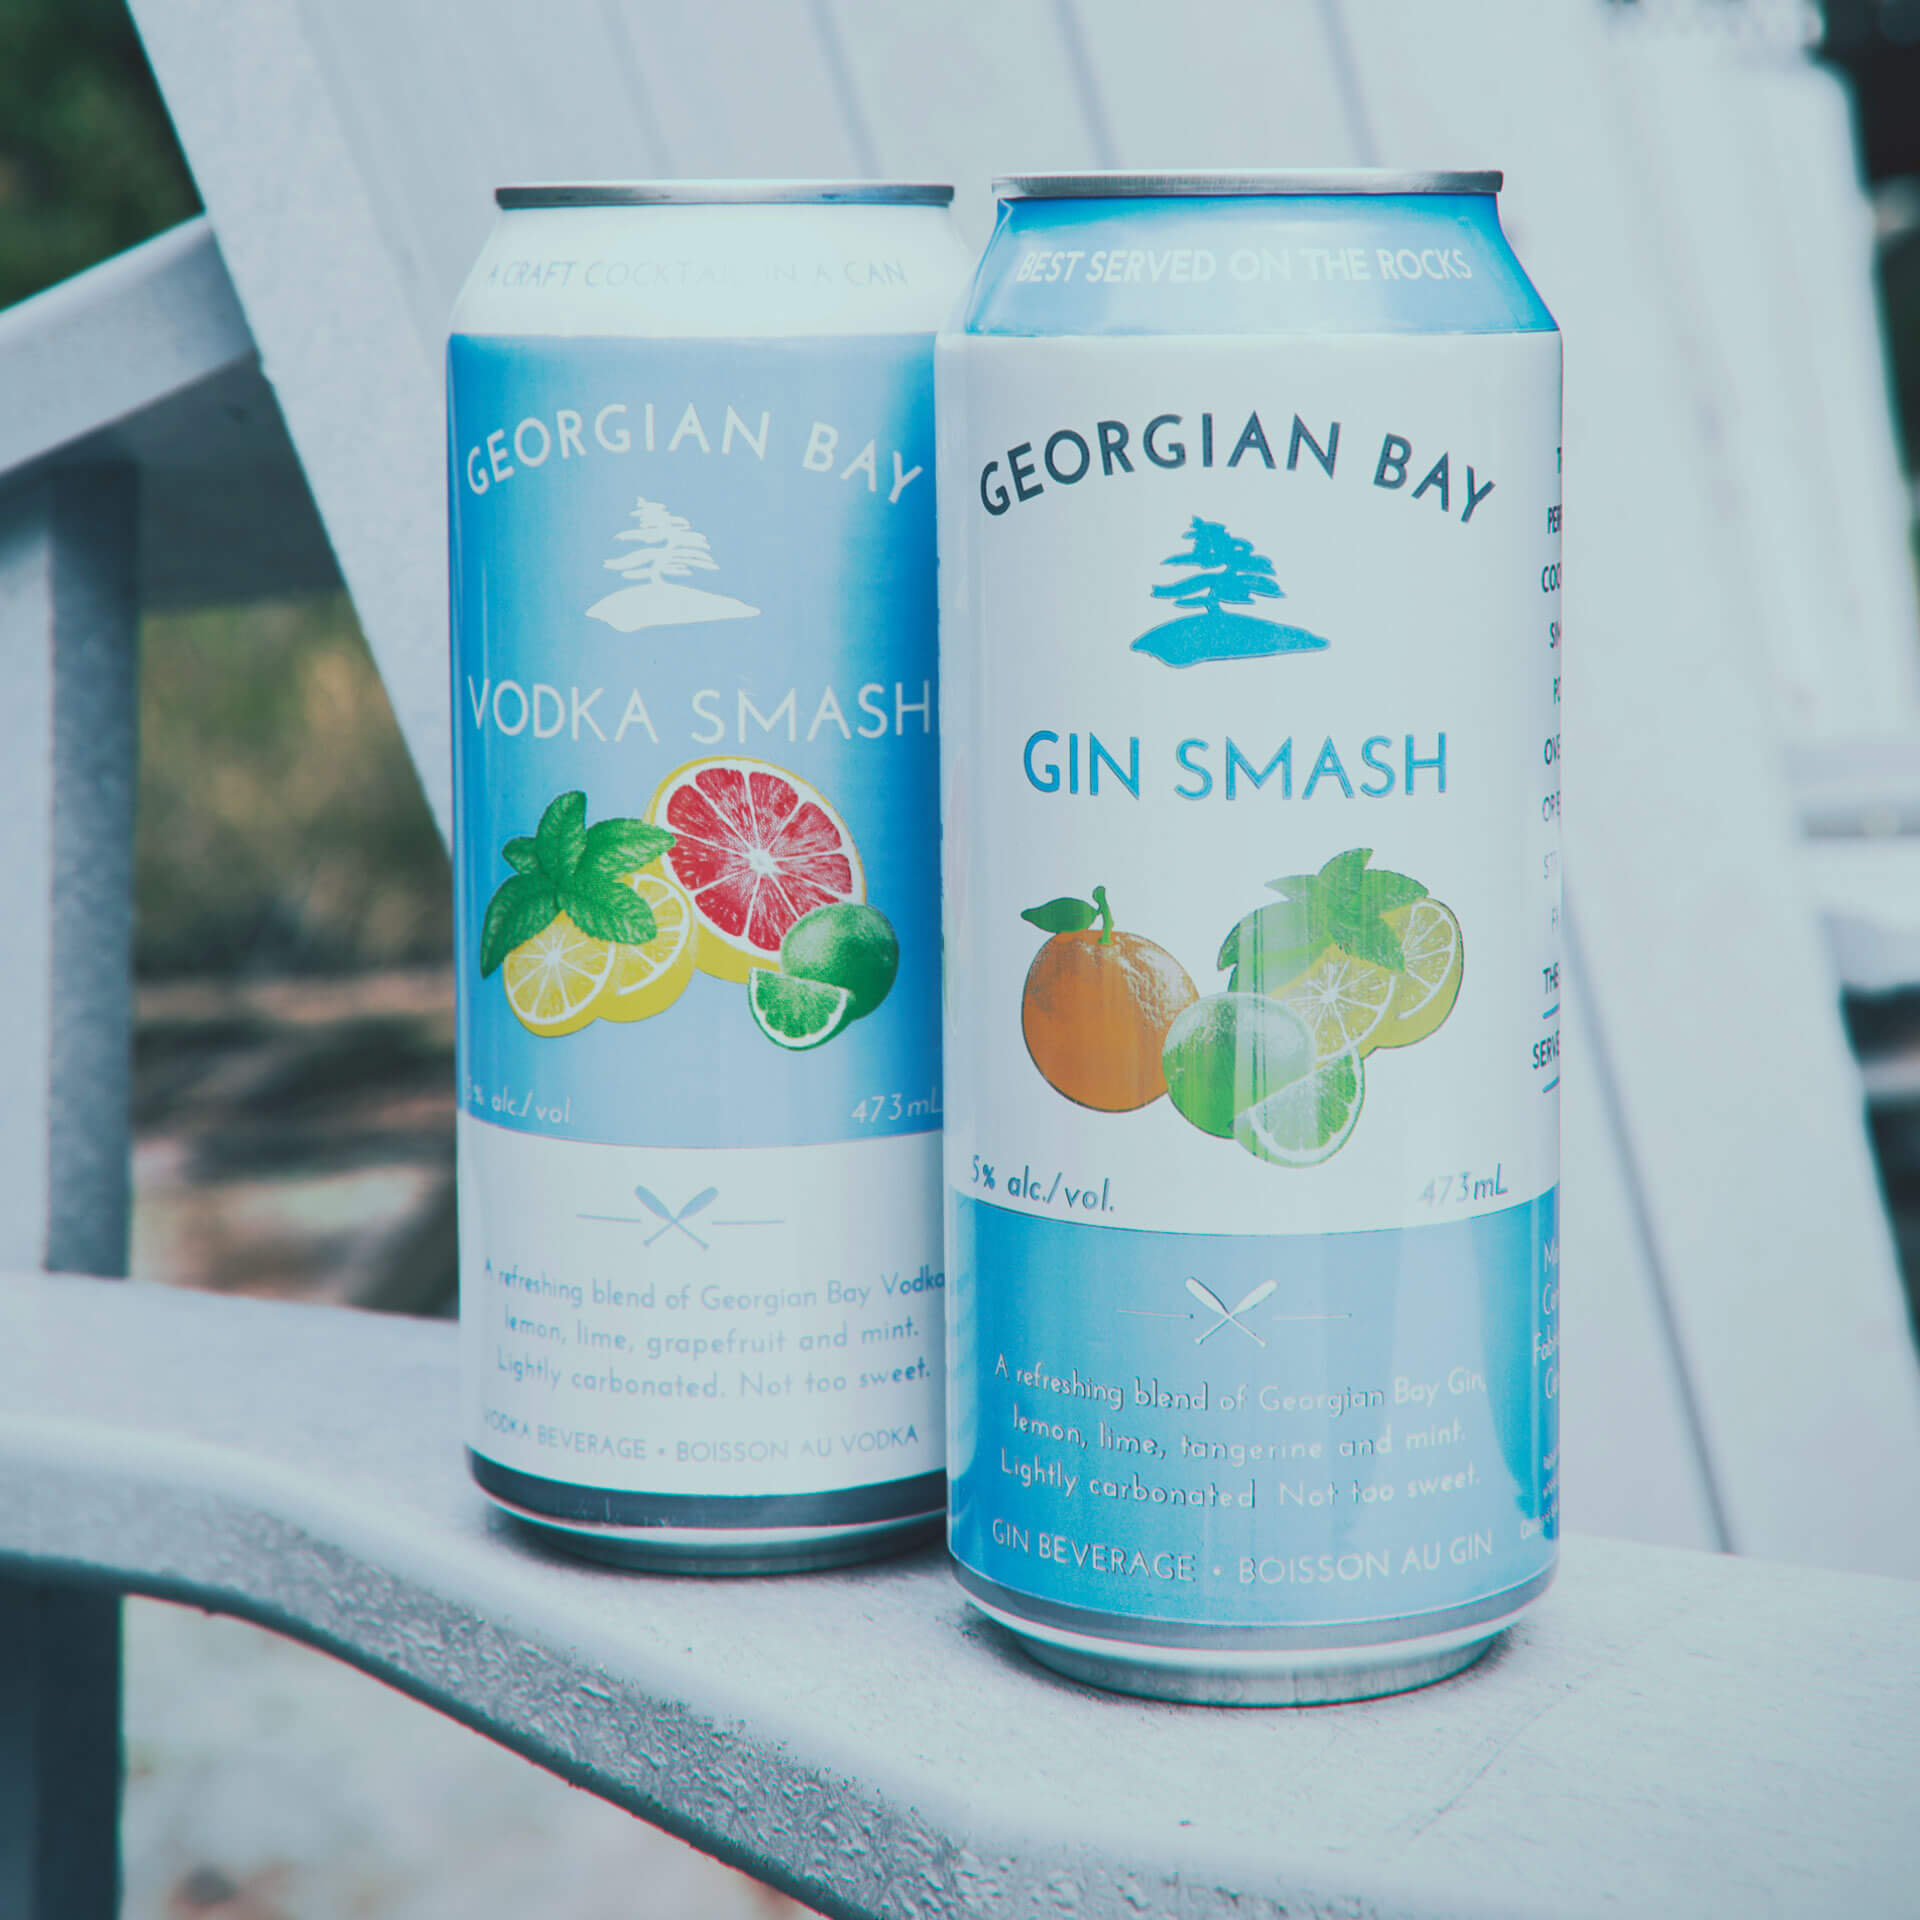 Georgian Bay Spirit Co. Gin Smash and Vodka Smash on Muskoka chair